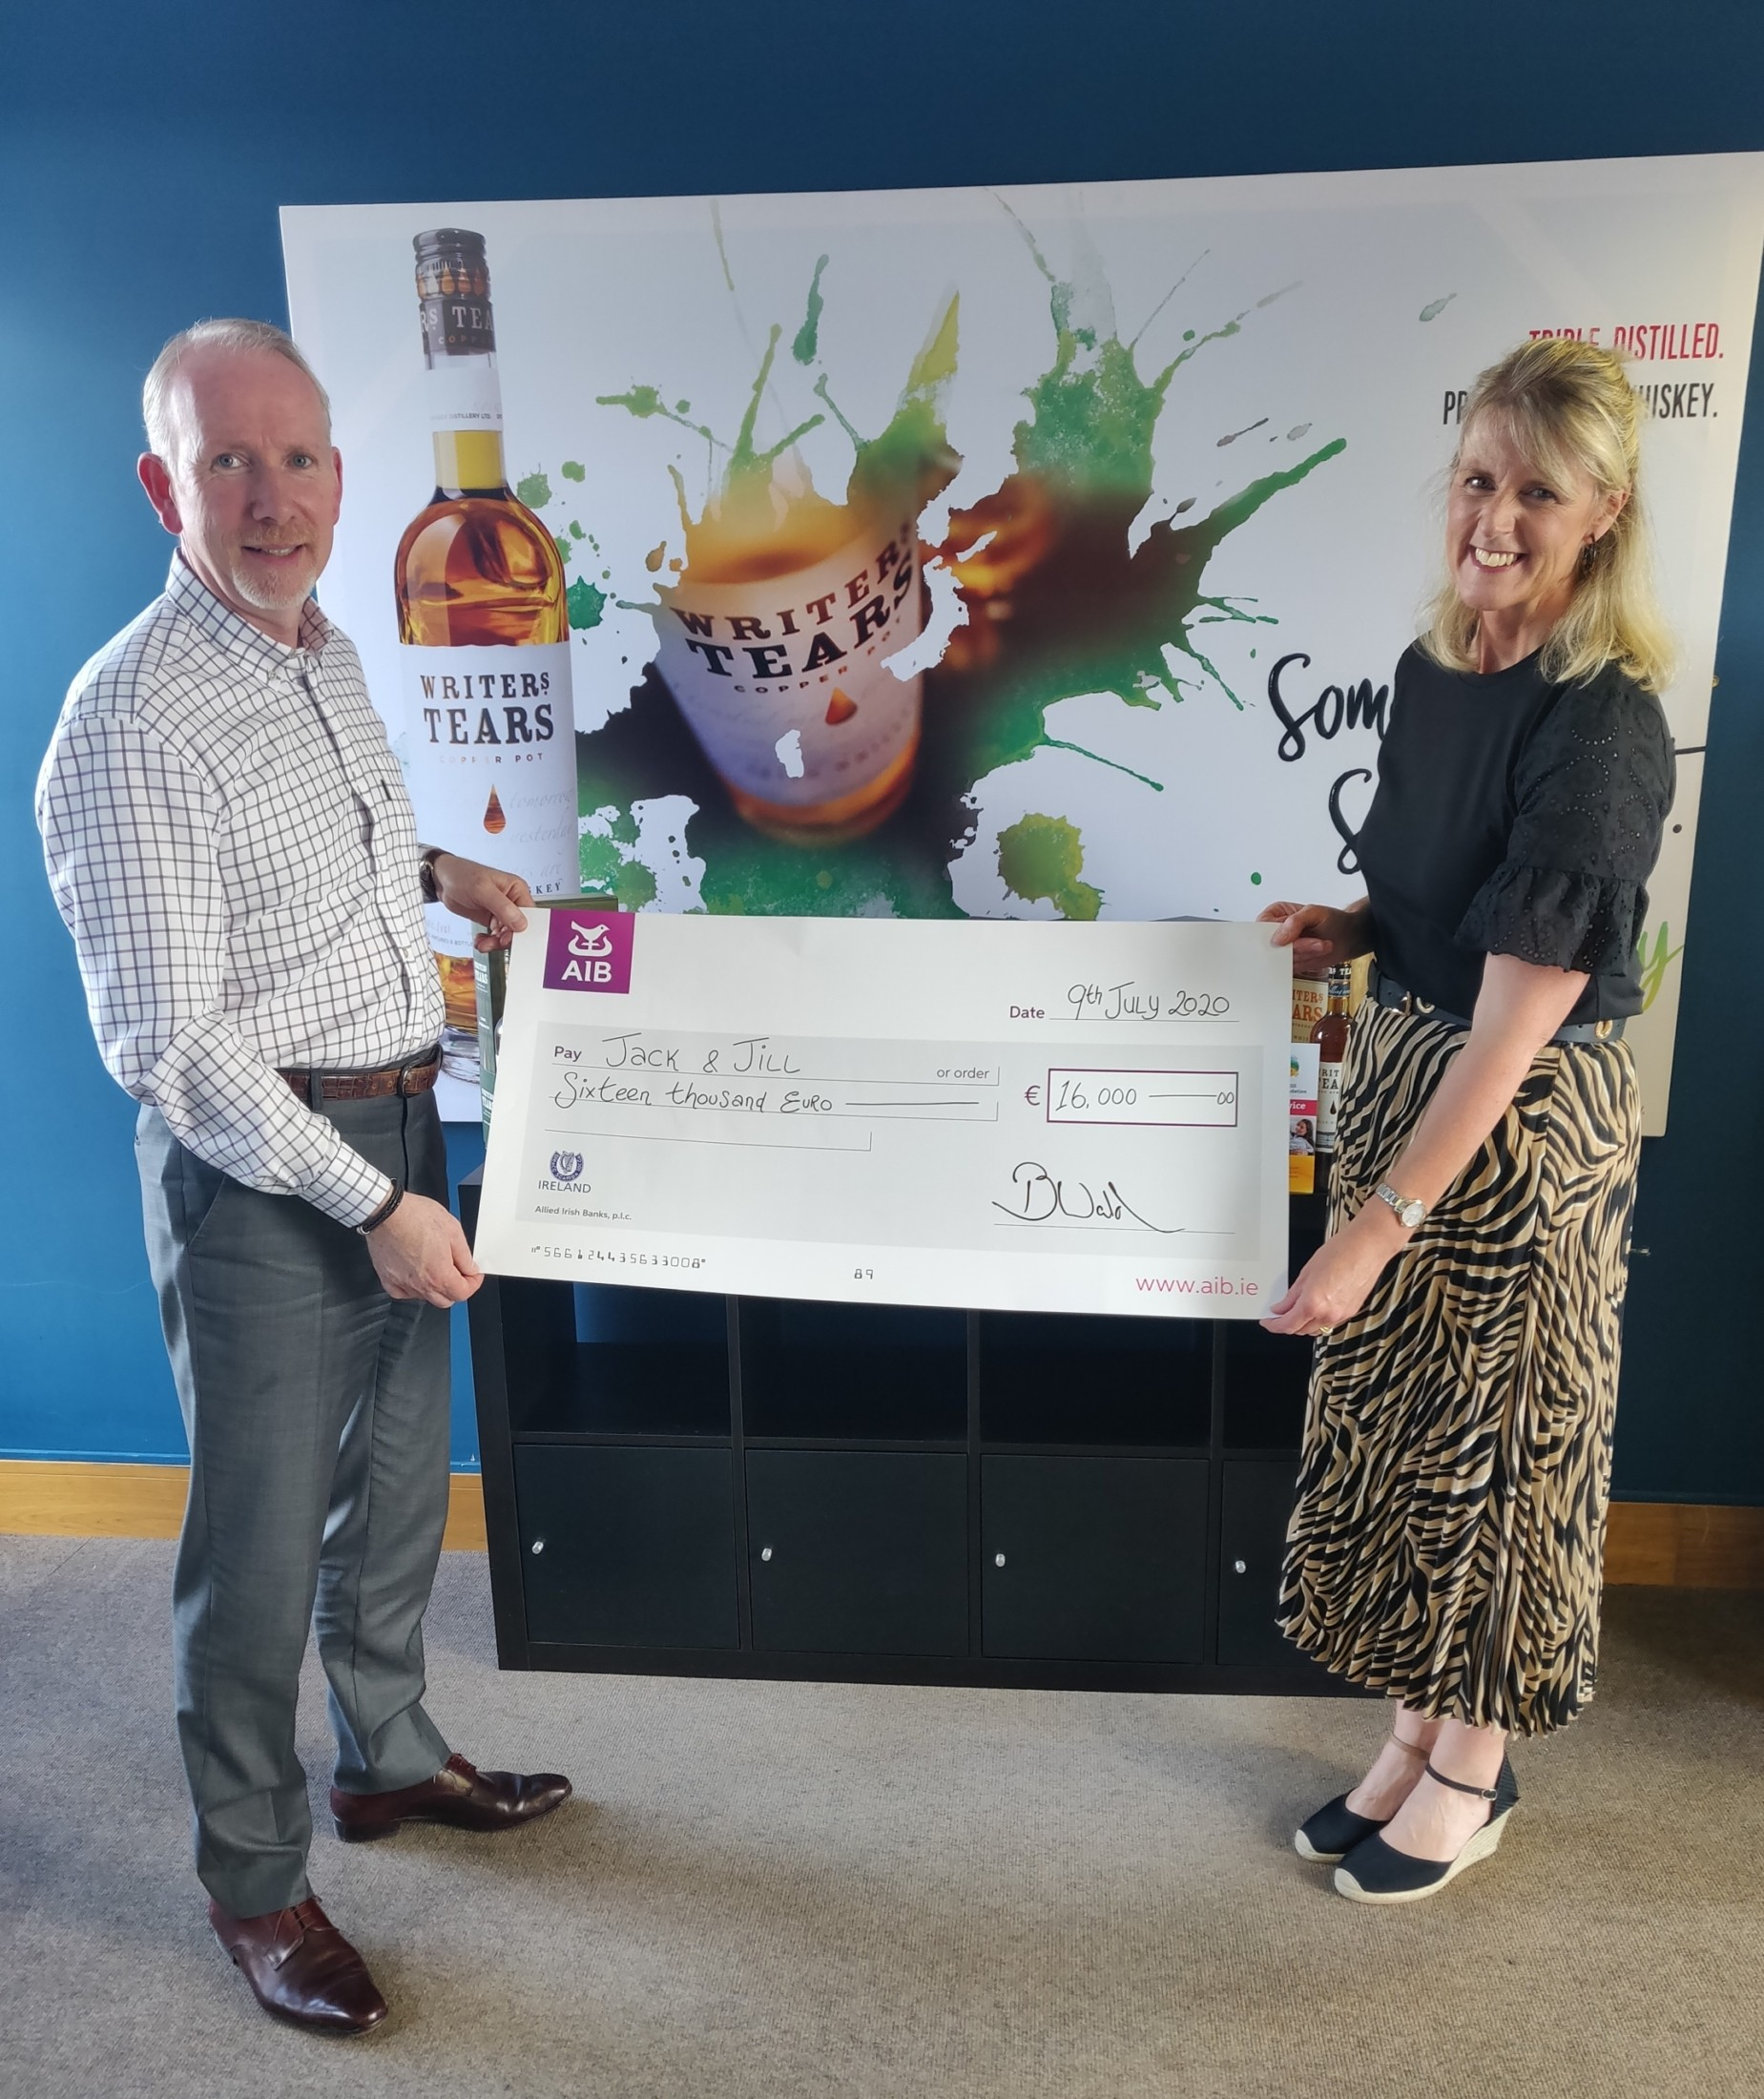 Walsh Whiskey Community Successfully Raises €16,000 for Seriously Ill Children Under 5